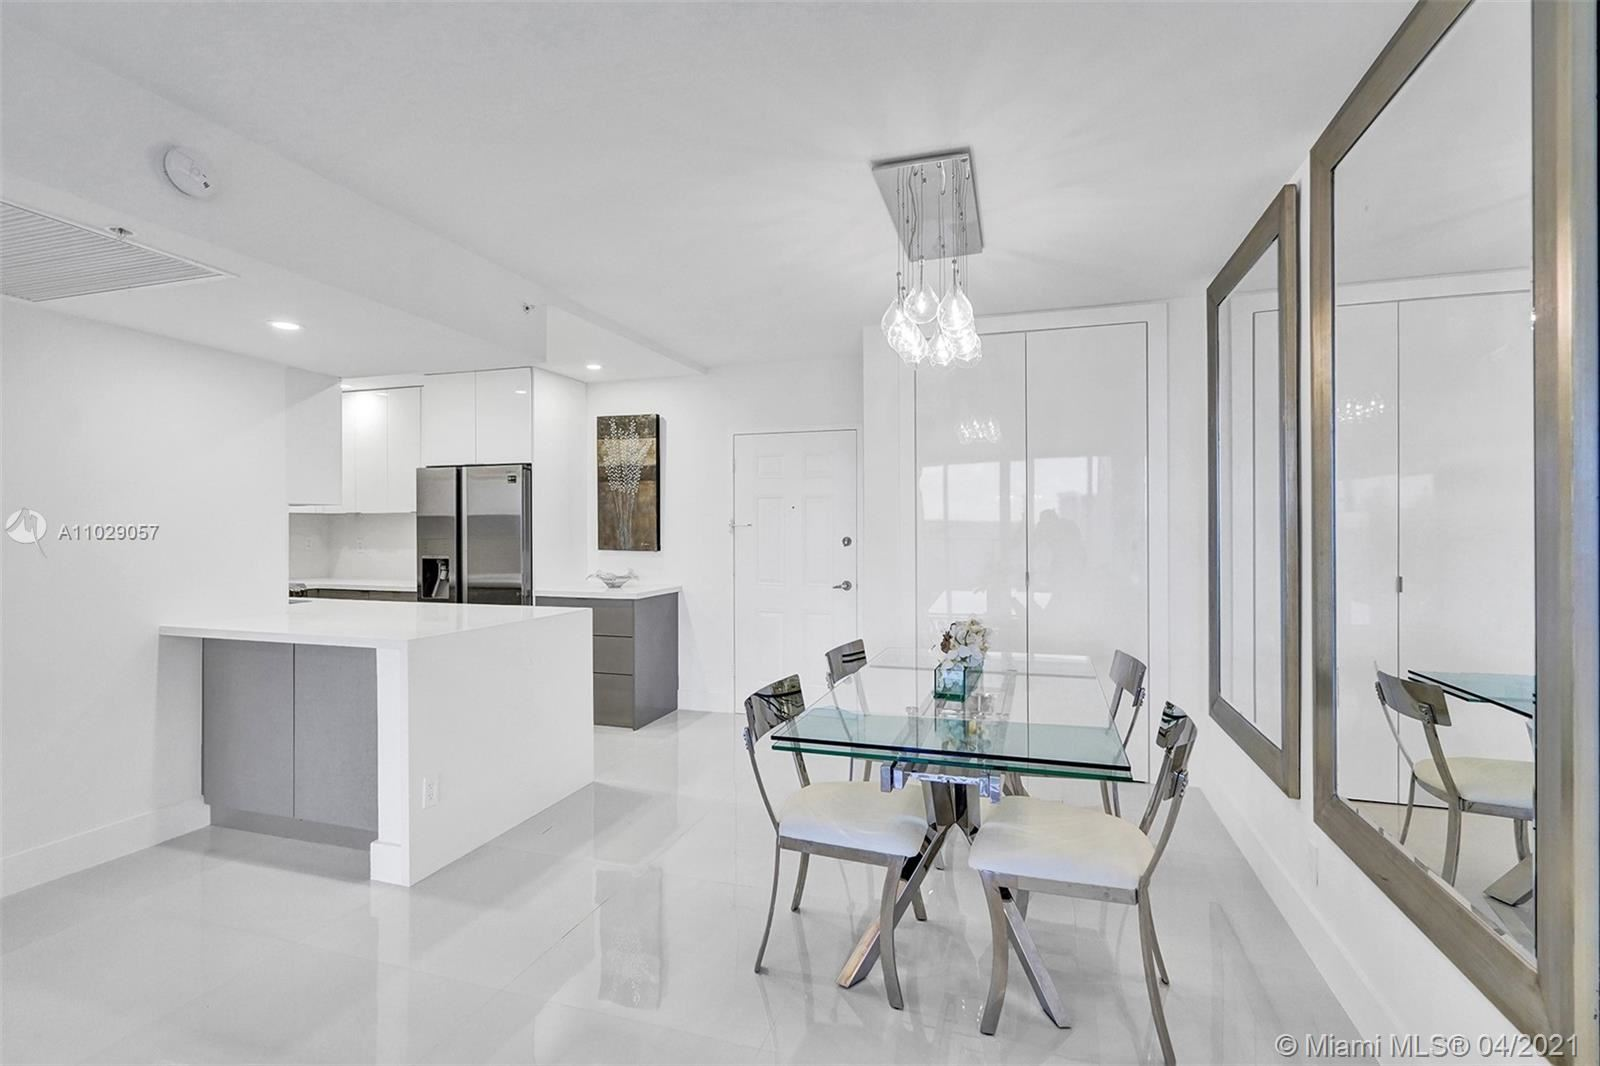 Photo of 2501 S Ocean Dr #529, Hollywood, FL 33019 (MLS # A11029057)